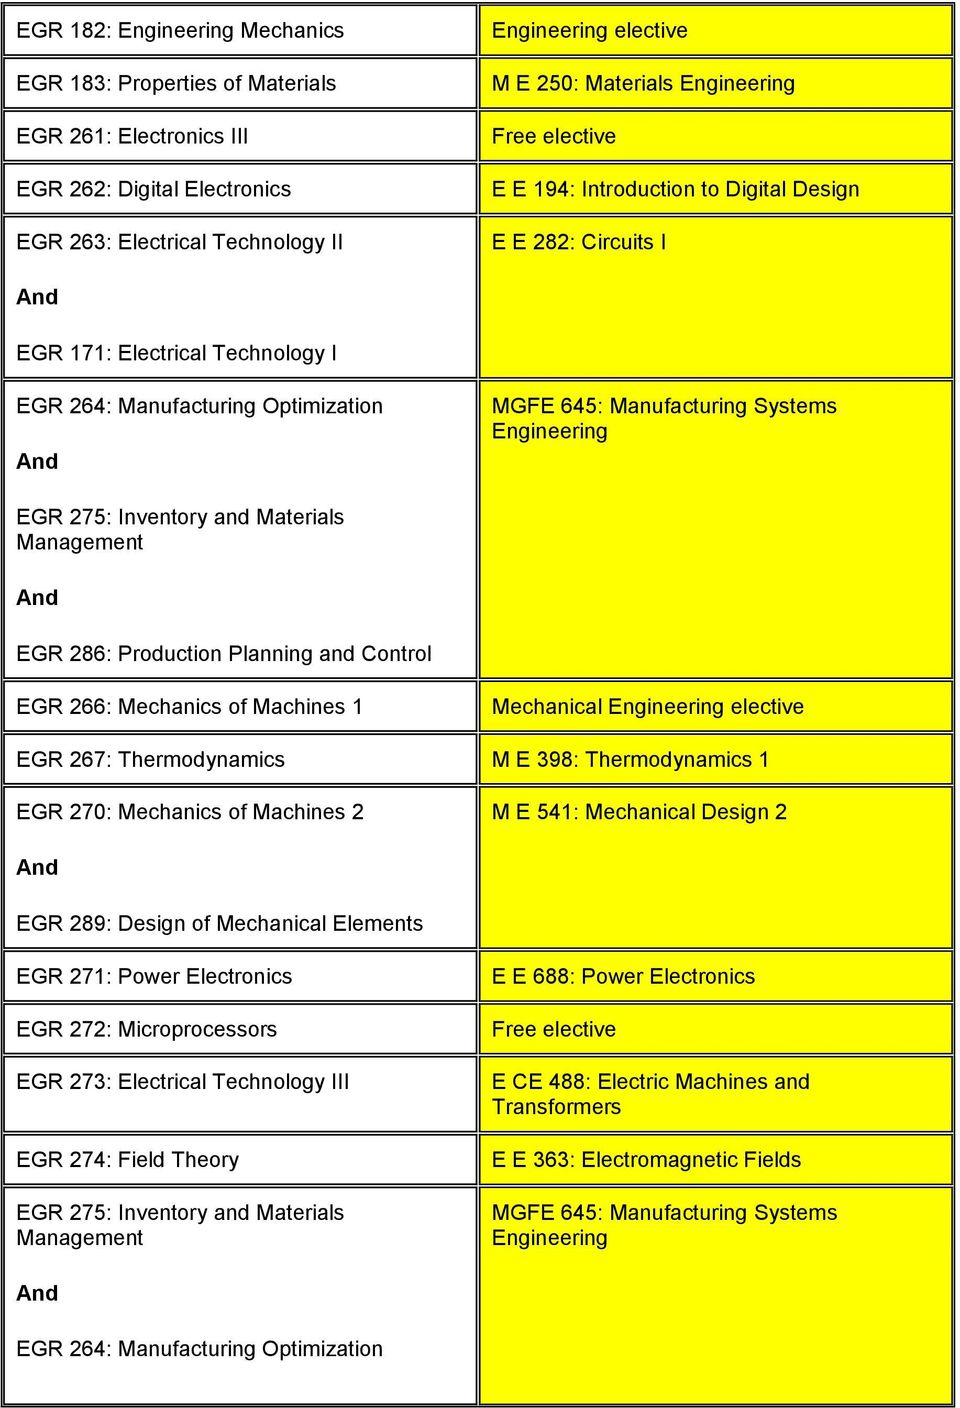 and Control EGR 266: Mechanics of Machines 1 Mechanical elective EGR 267: Thermodynamics M E 398: Thermodynamics 1 EGR 270: Mechanics of Machines 2 M E 541: Mechanical Design 2 EGR 289: Design of